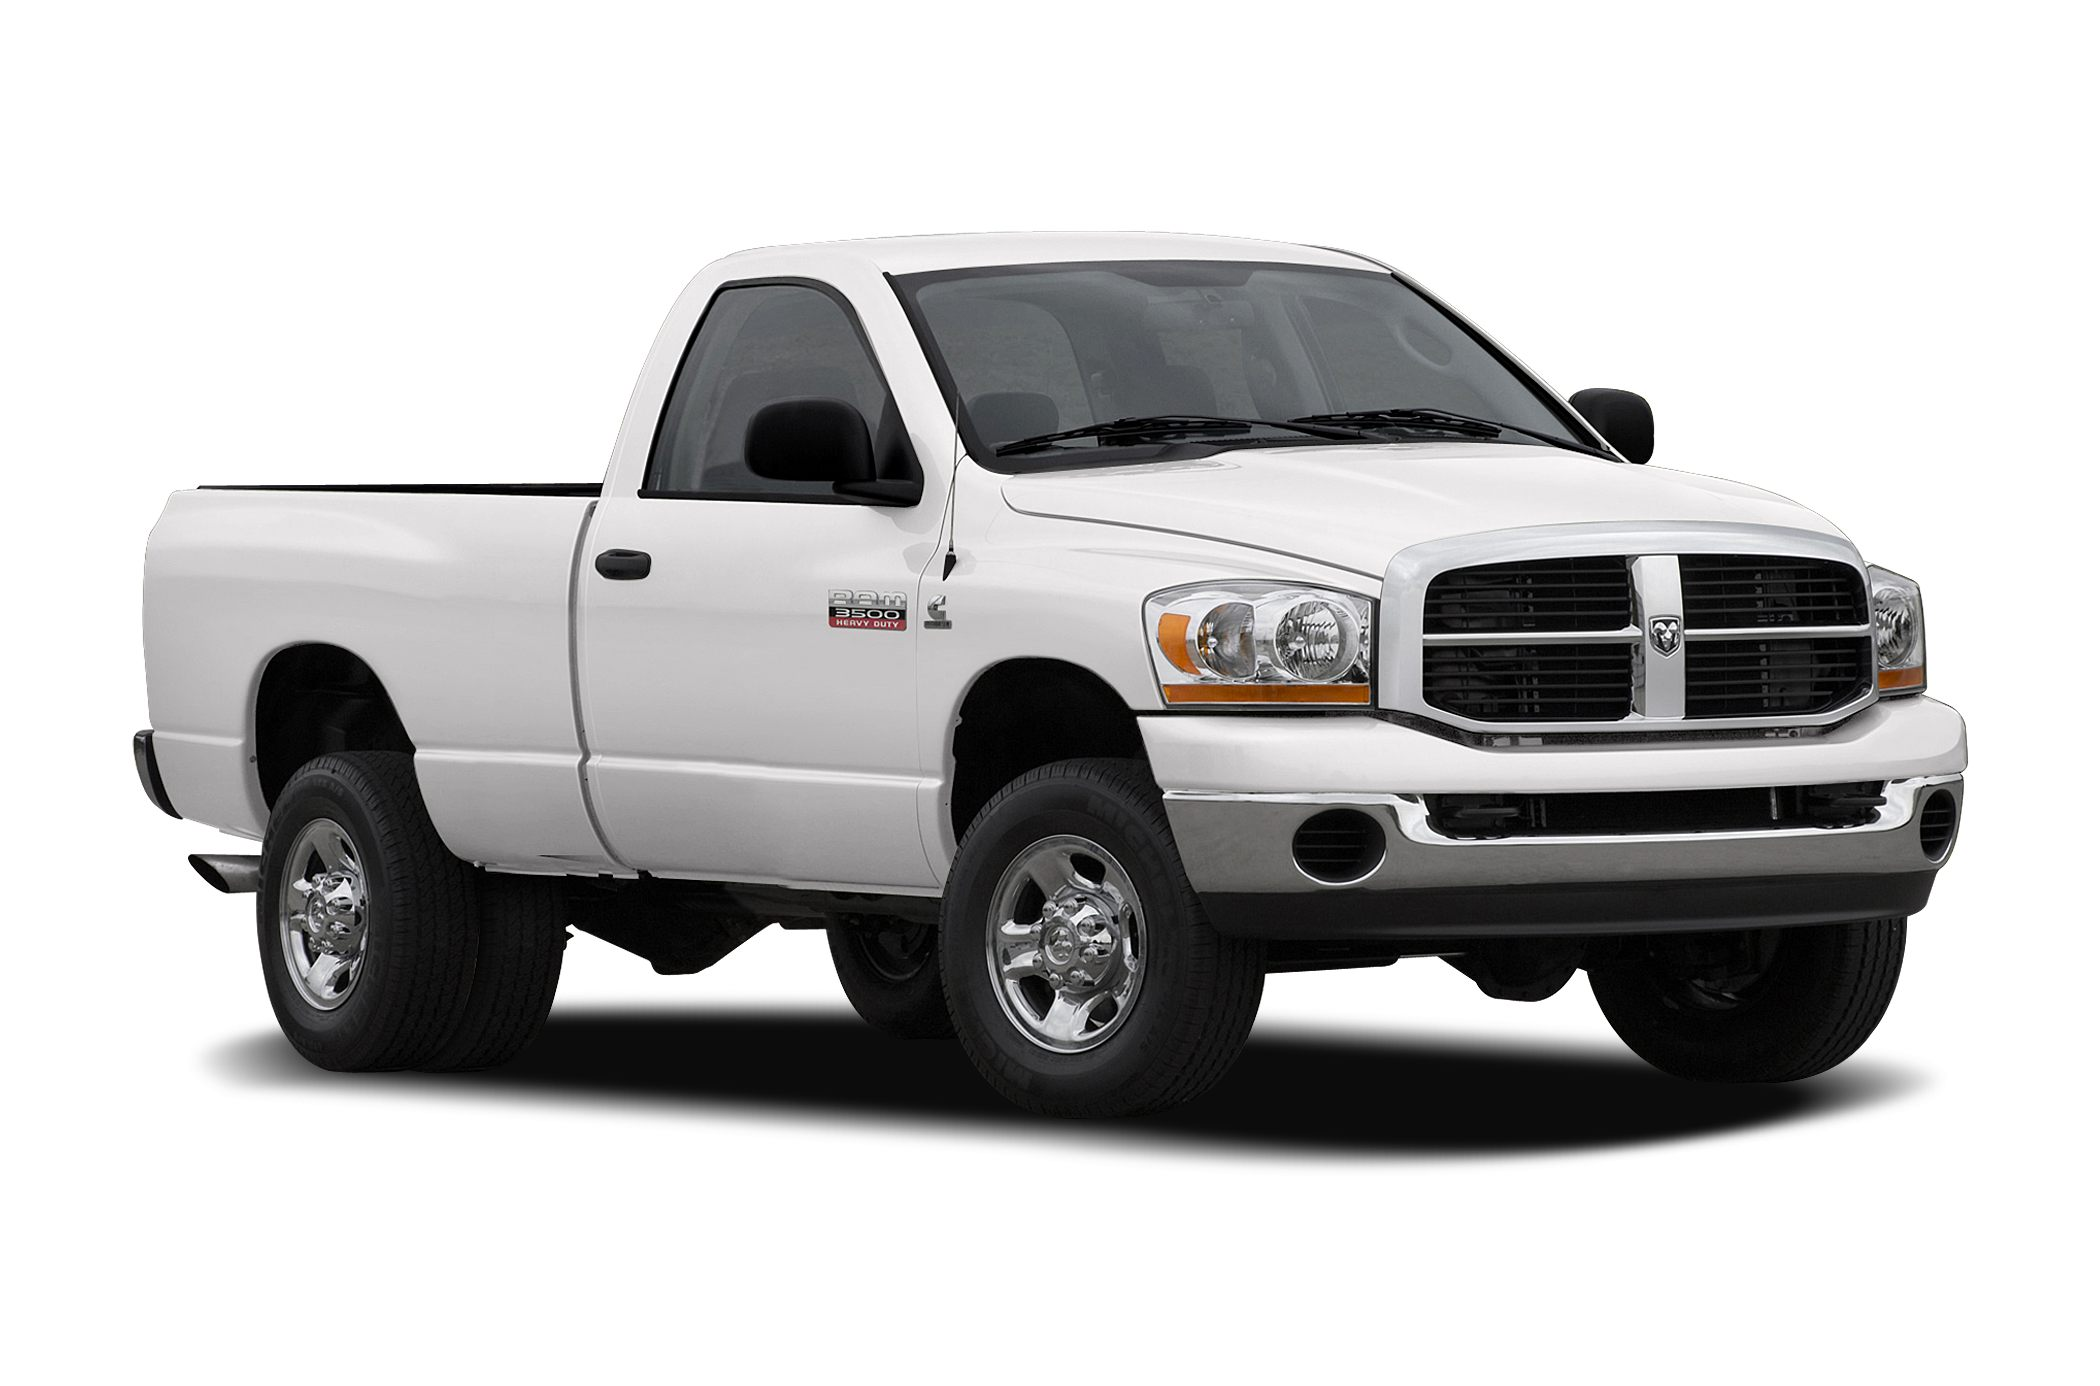 2009 Dodge Ram 3500